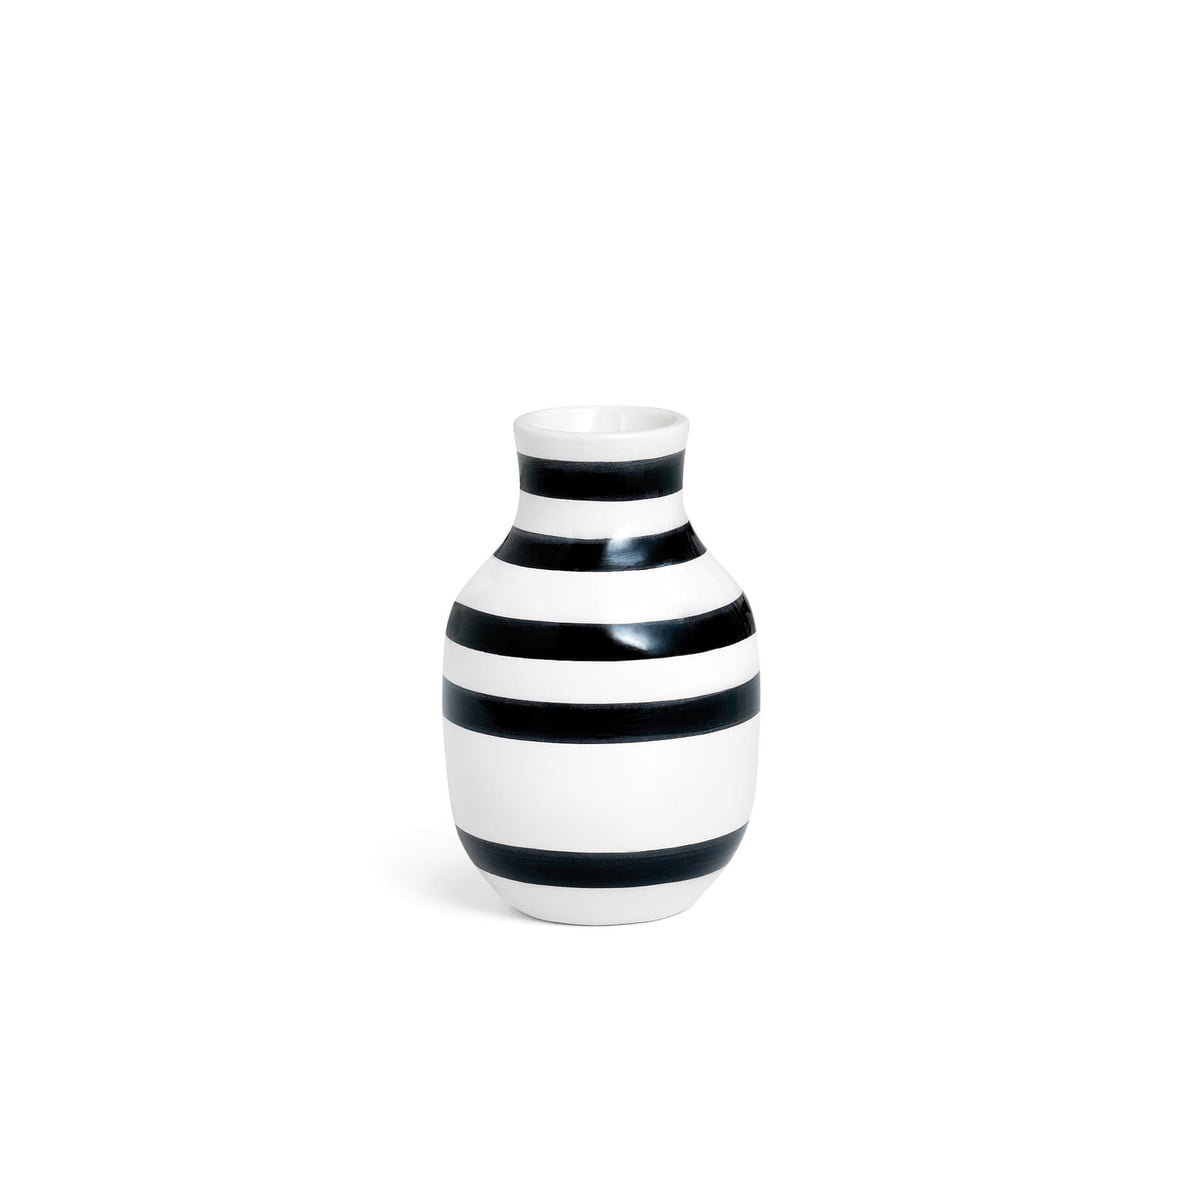 omaggio vase h 12 5 cm by k hler design. Black Bedroom Furniture Sets. Home Design Ideas